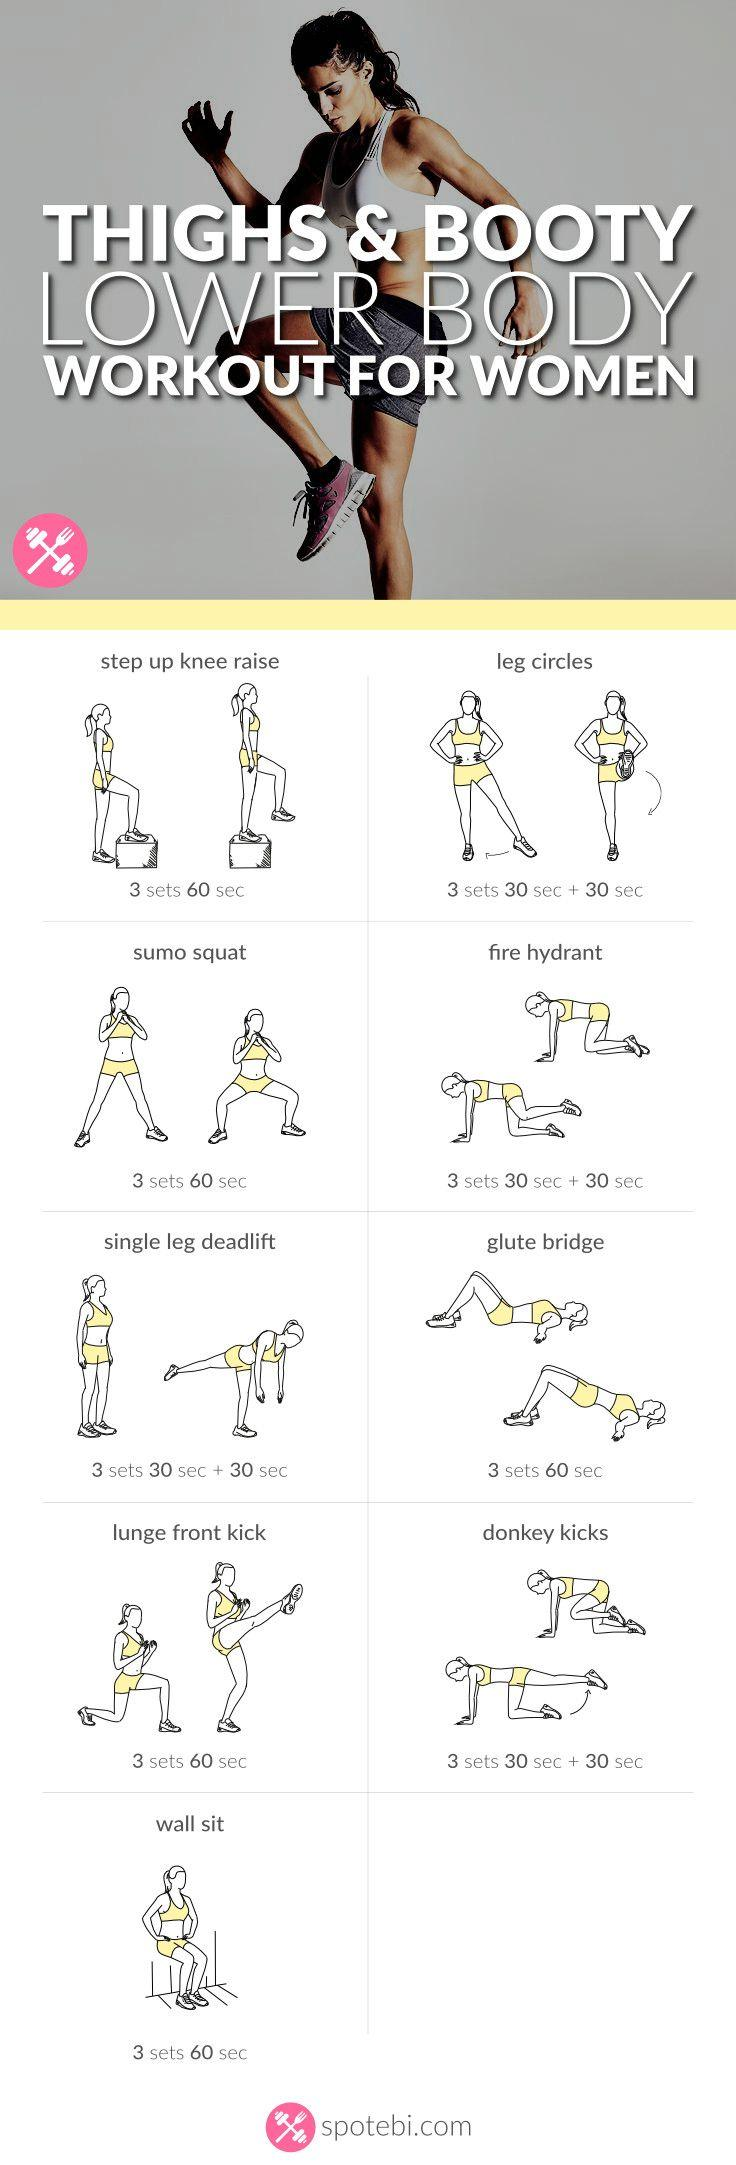 masters of lower body exercises essay Masters of lower body exercises essay - lunges and squats are often referred to  as the masters of lower body exercises in addition to your legs, theses.